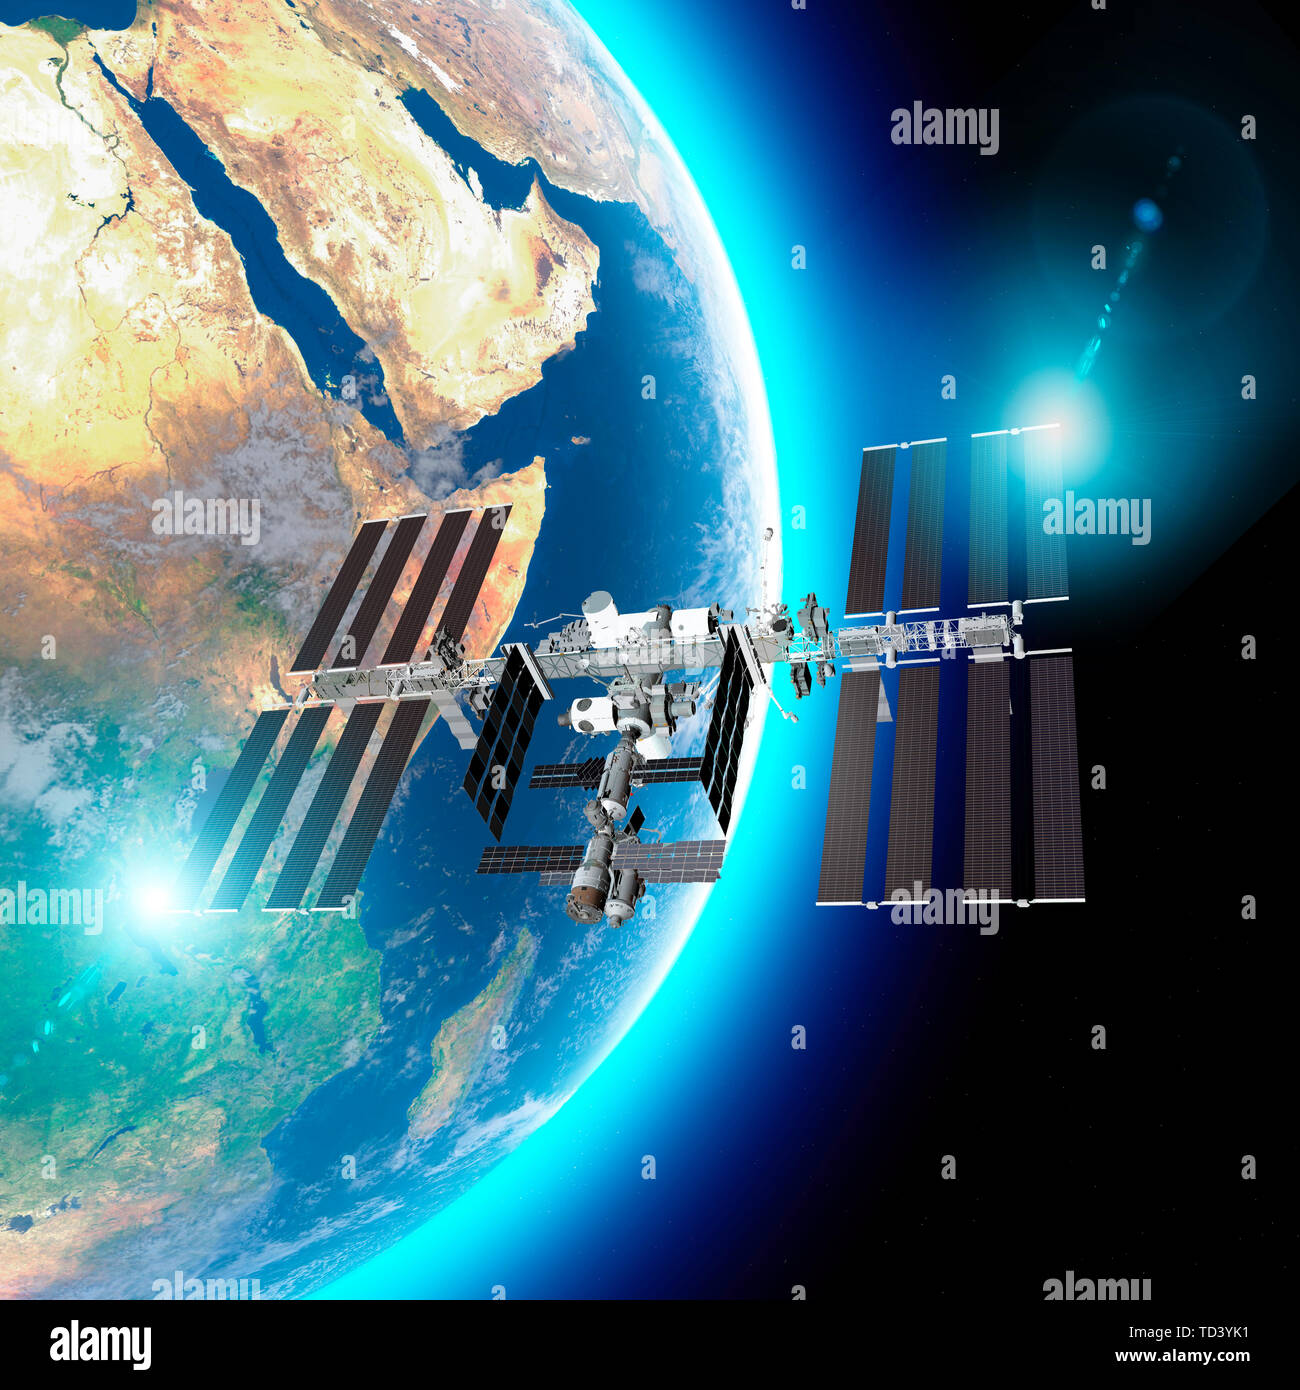 The International Space Station (ISS) is a space station, or a habitable artificial satellite, in low Earth orbit. Satellite view of the earth and ISS - Stock Image